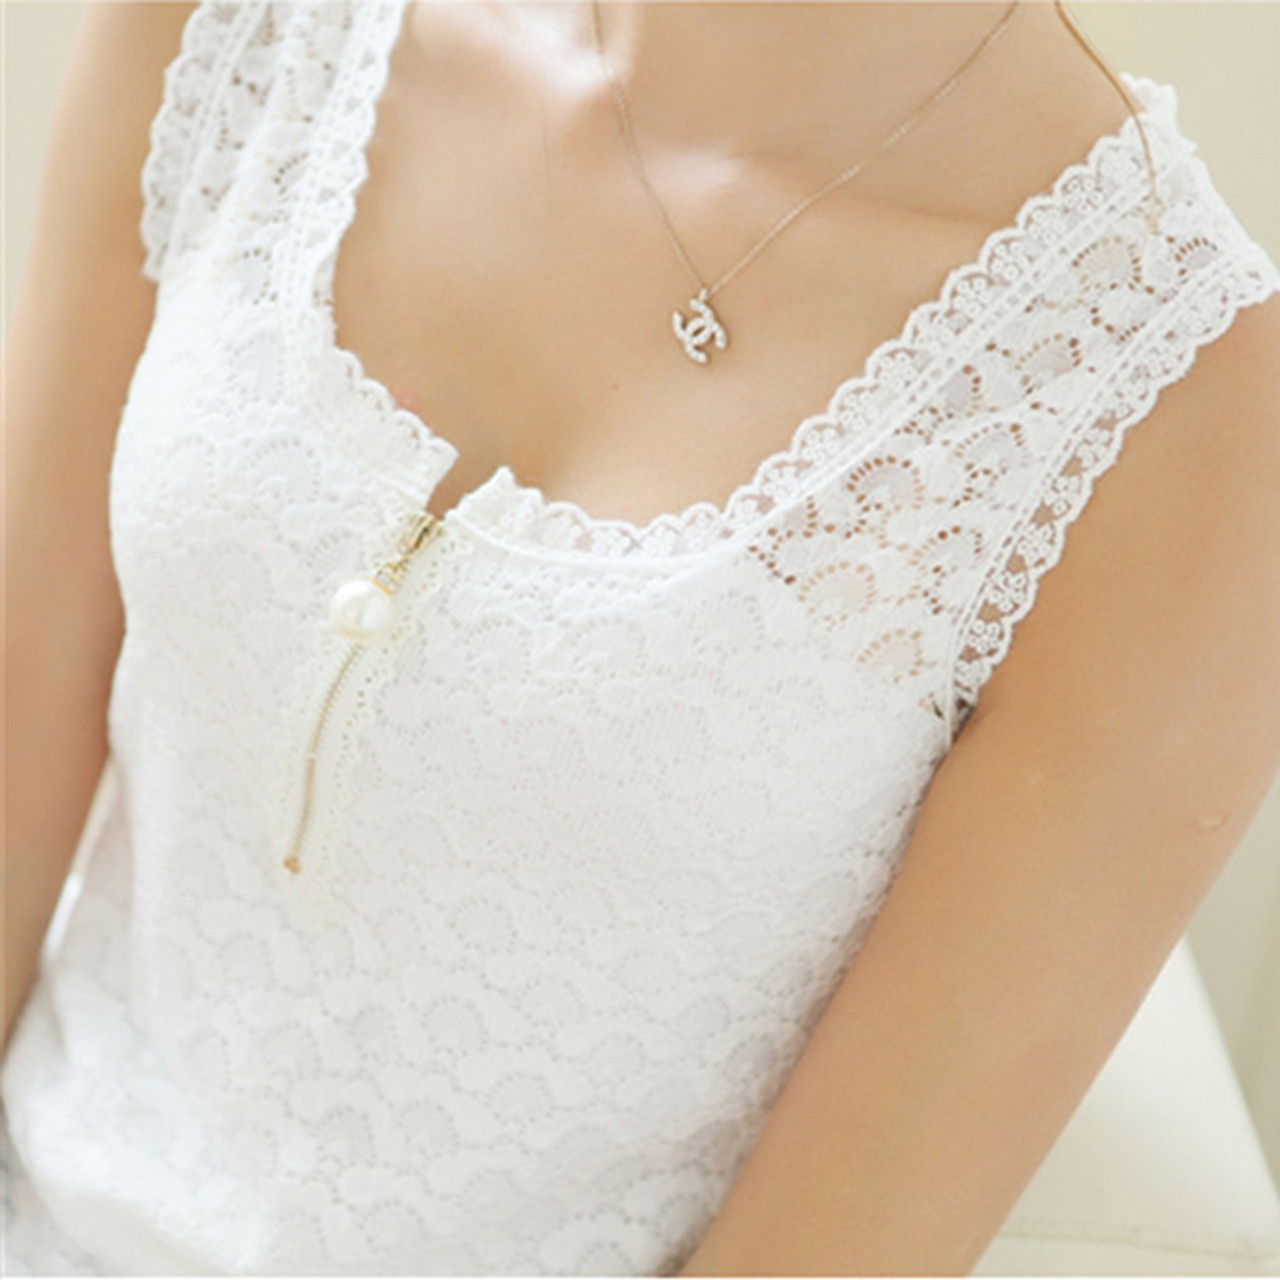 3808aac57e4 Fitness Tank Tops Summer Style Ladies Tops Beaded White Lace Blouse Shirt  2018 S-XXXL ...